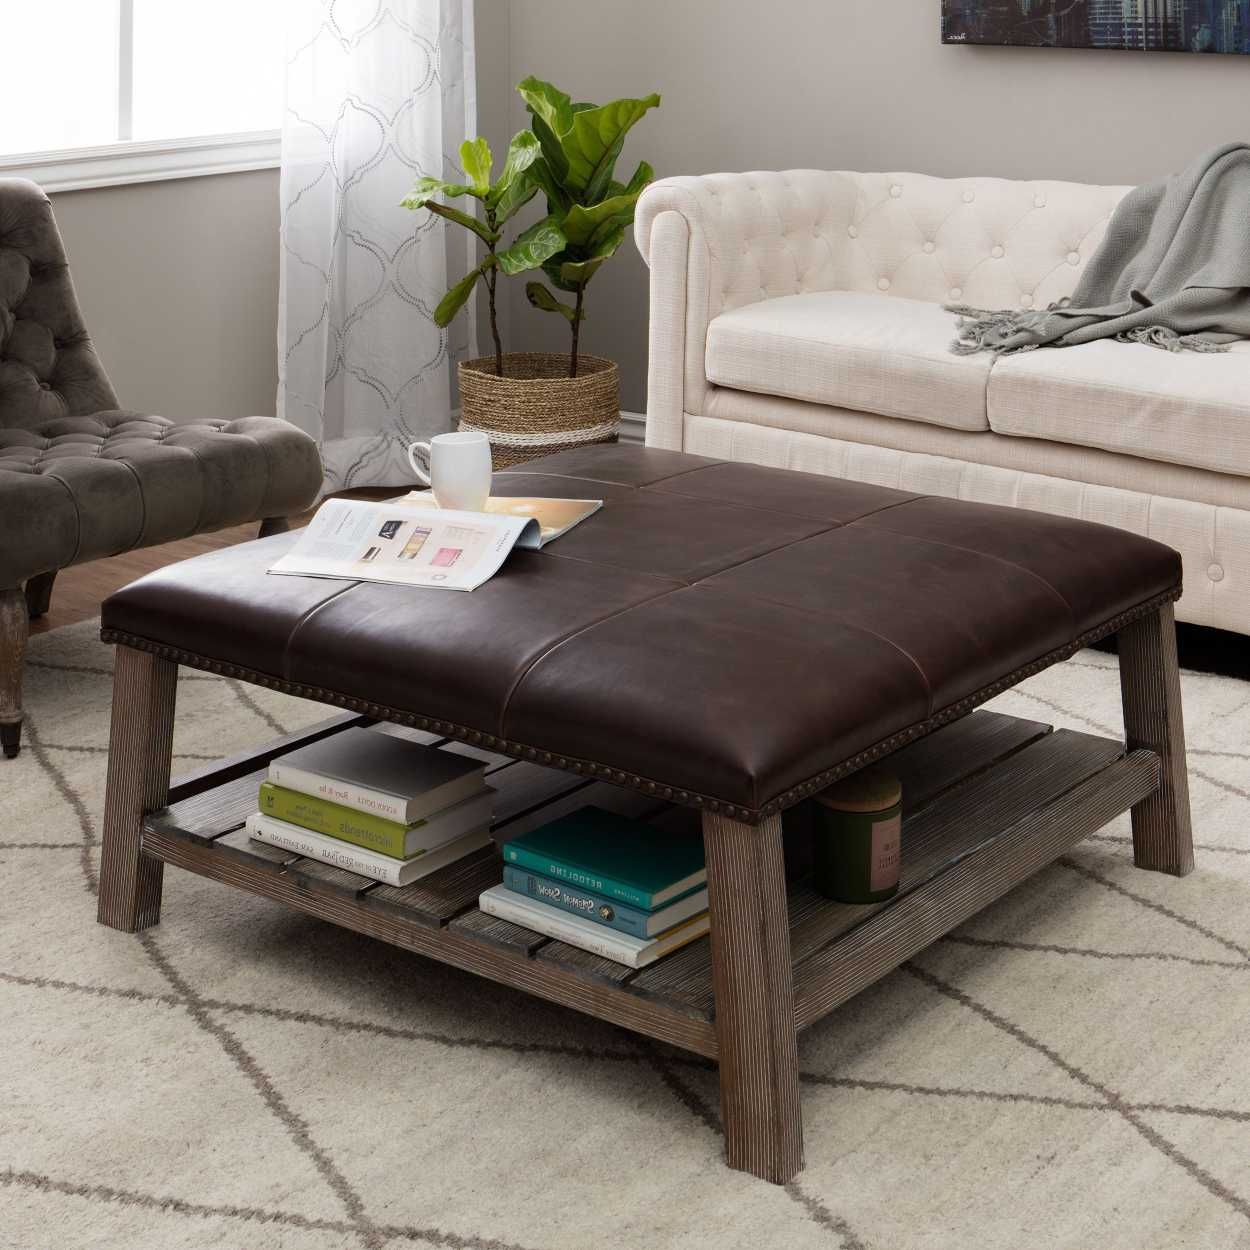 Inspirational Red Ottoman Coffee Table Upholstered Ottoman Coffee Table Coffee Table Ottoman Coffee Table